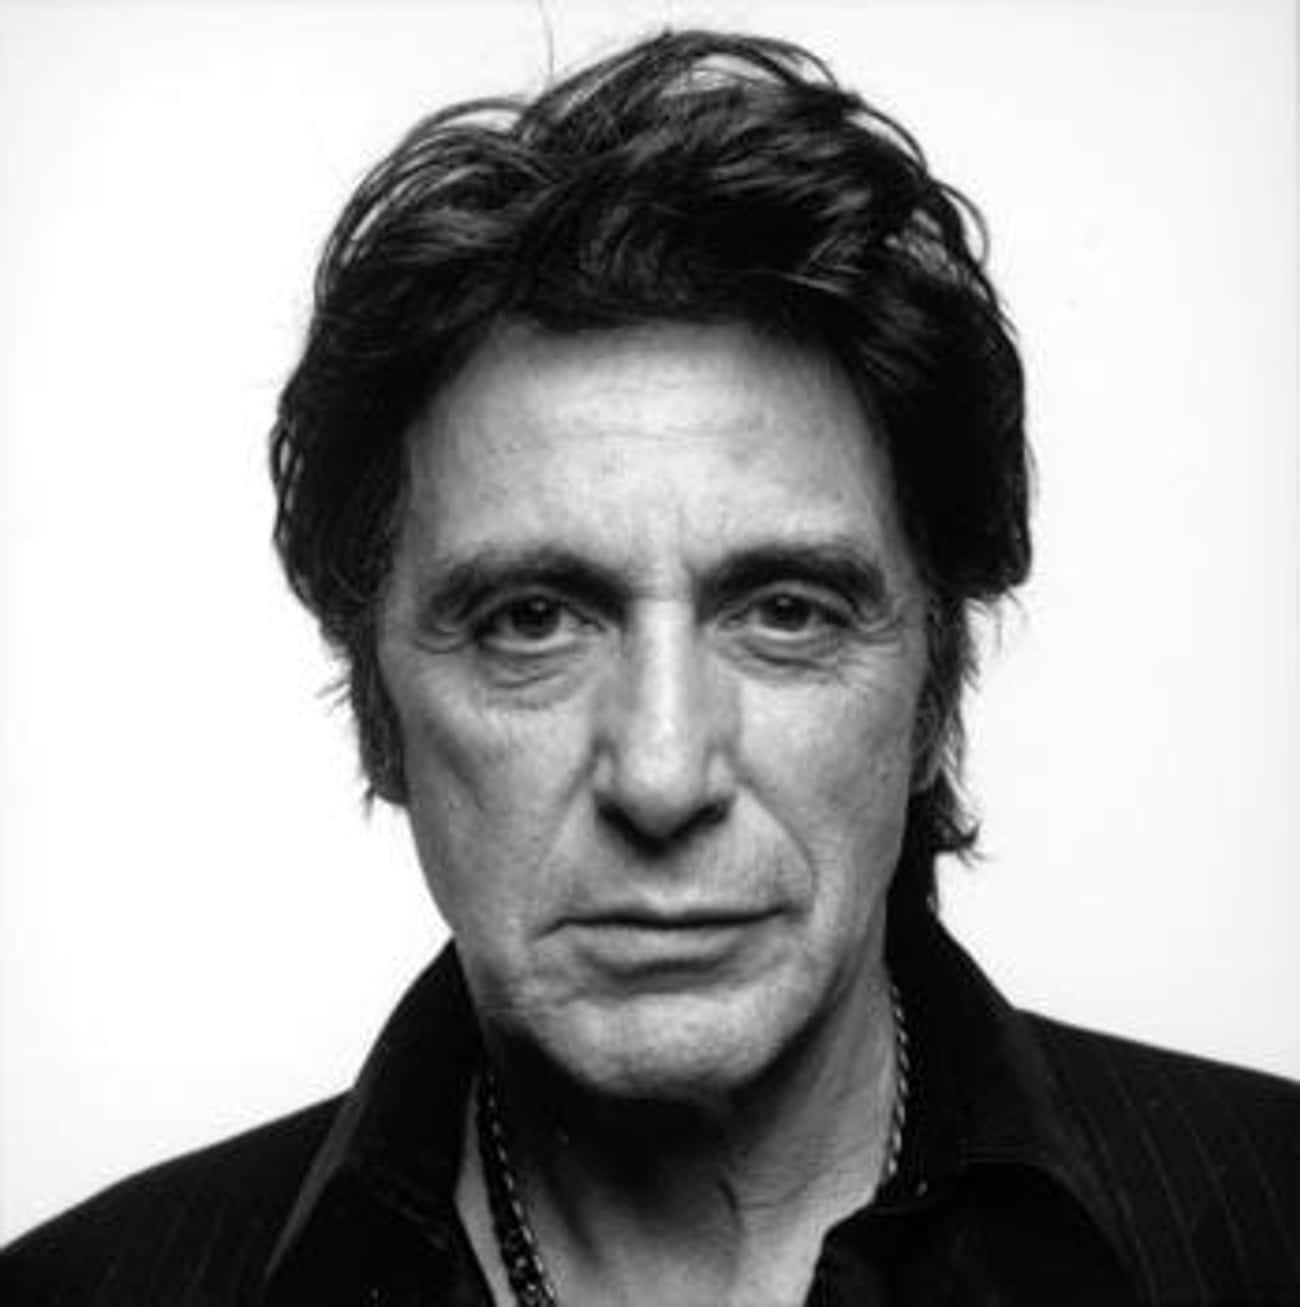 Al Pacino is listed (or ranked) 3 on the list All Triple Crown Of Acting Winners, Ranked